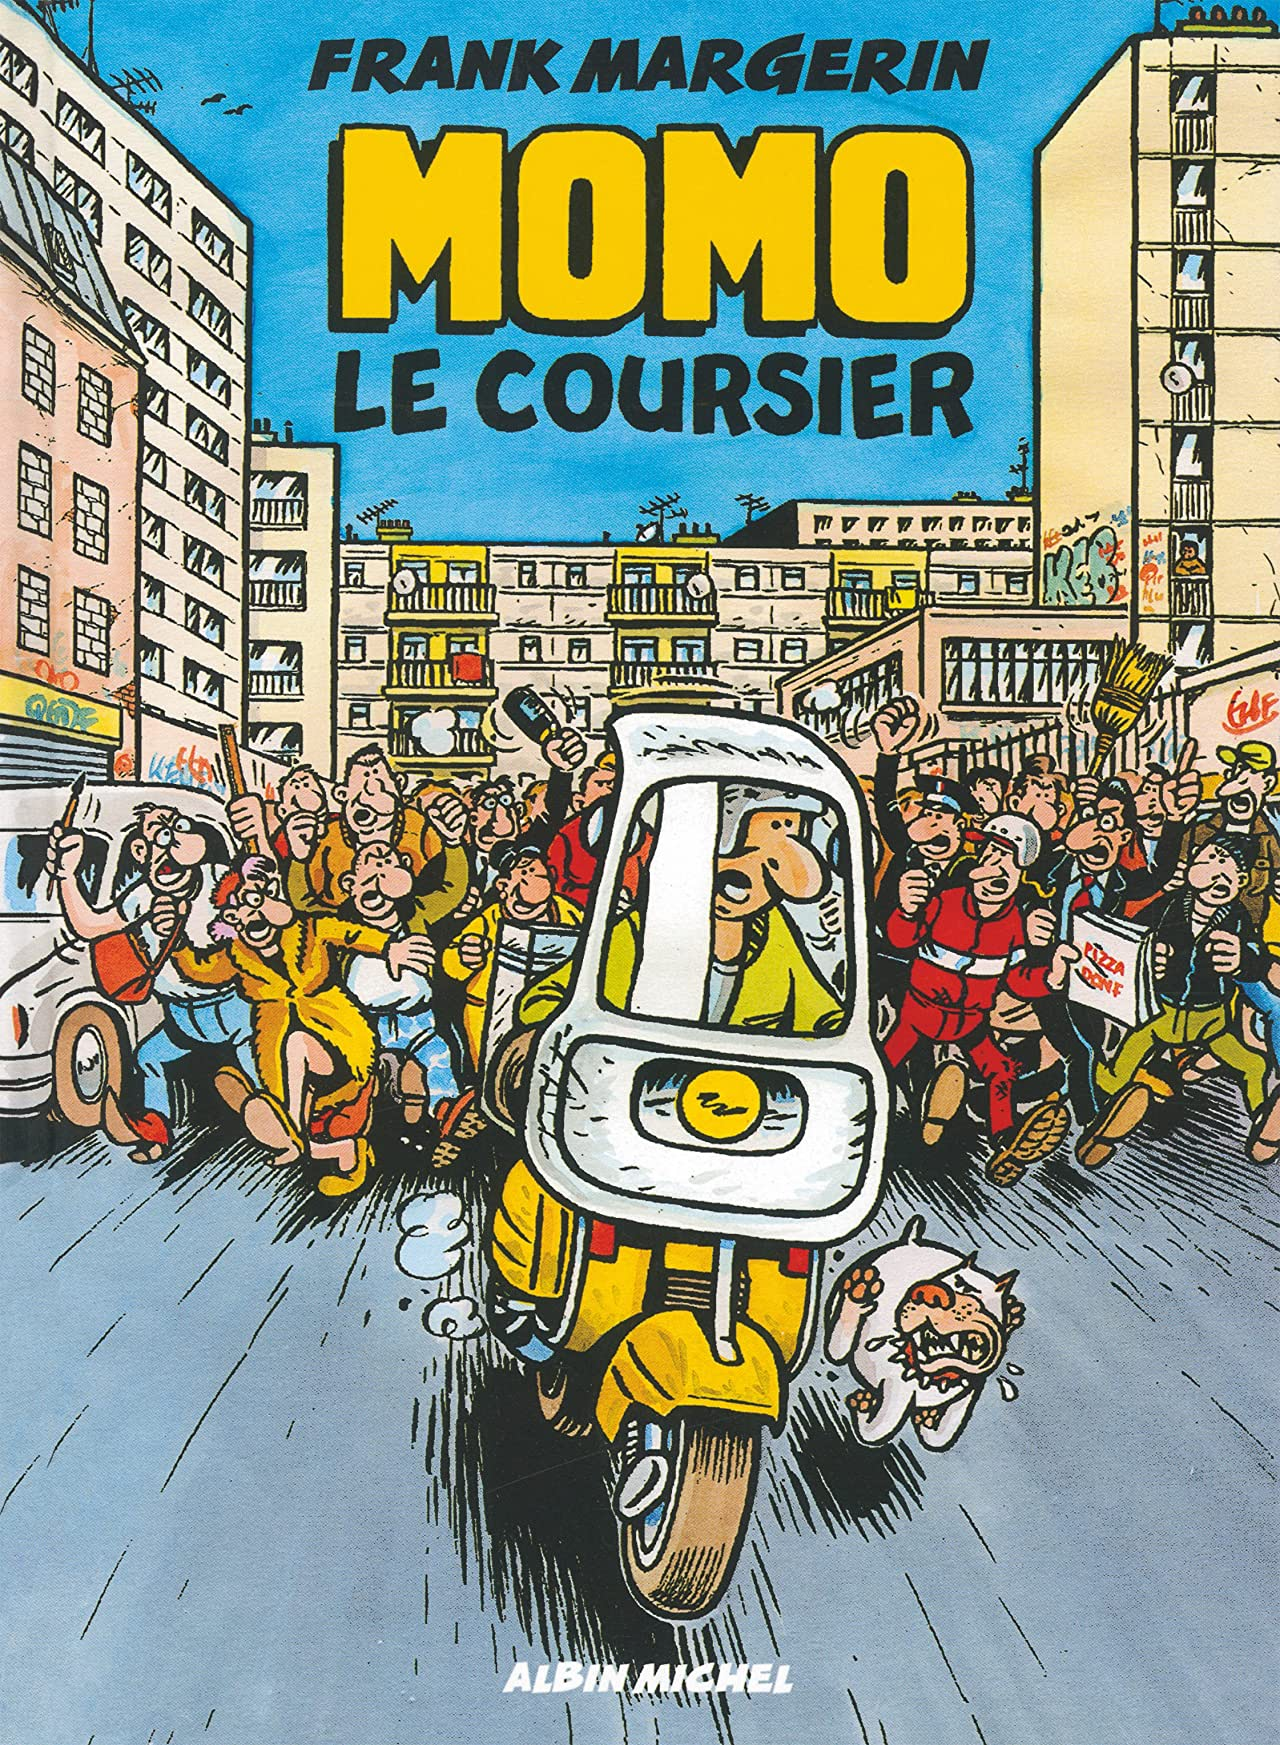 Momo le coursier Vol. 1